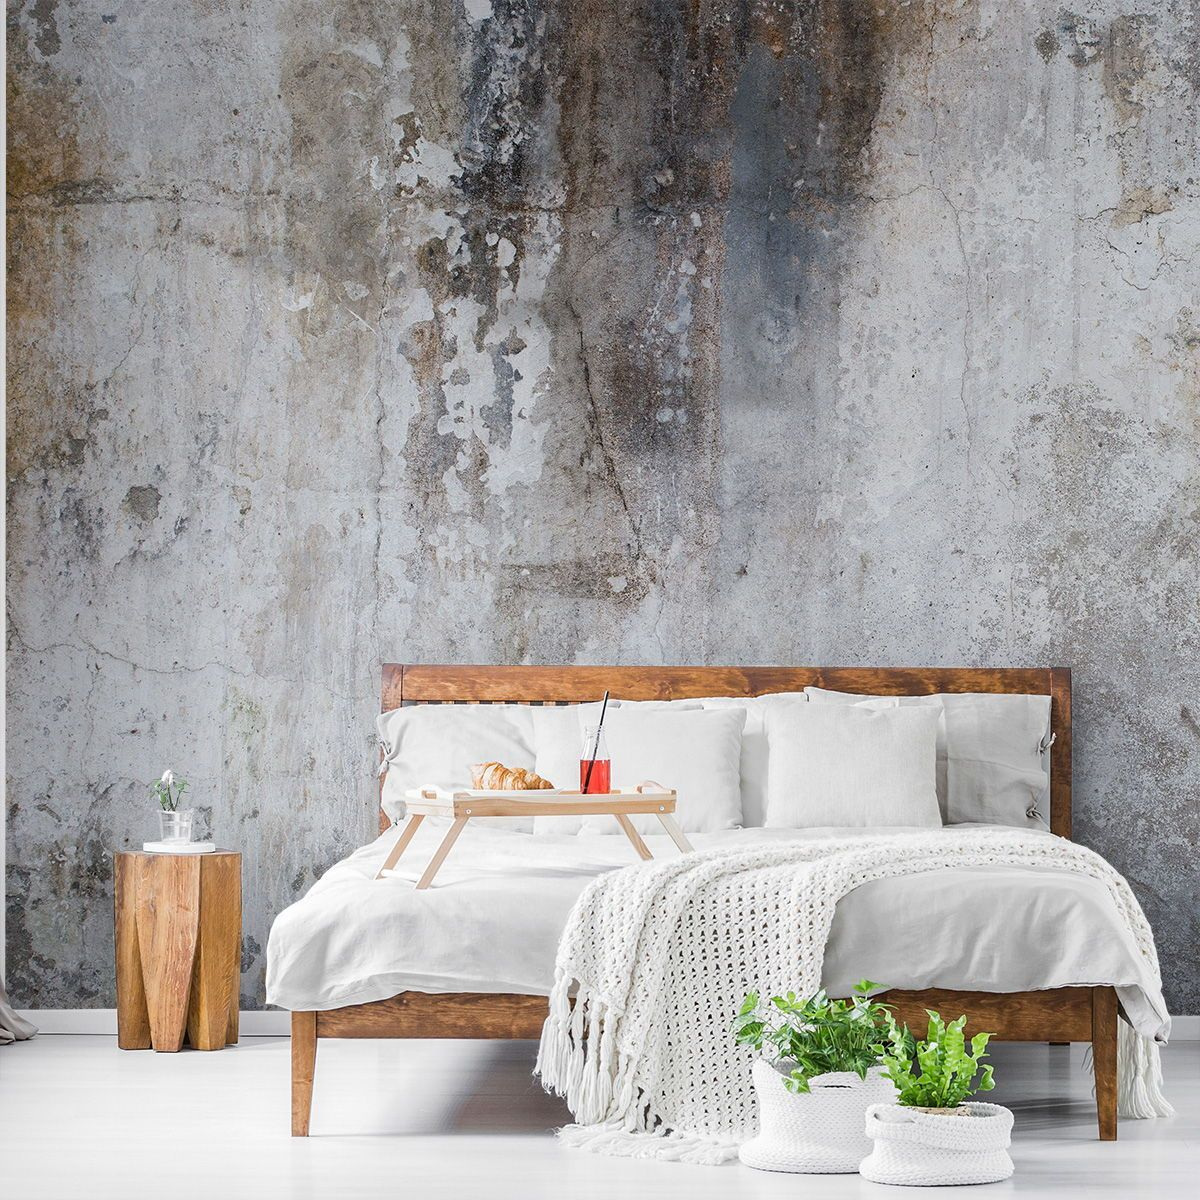 Give Your Room That Show Stopping Feature Wall With A Custom Made Wallpaper Mural From Wallsauce In 2020 Concrete Wallpaper Mural Wallpaper Wood Effect Wallpaper